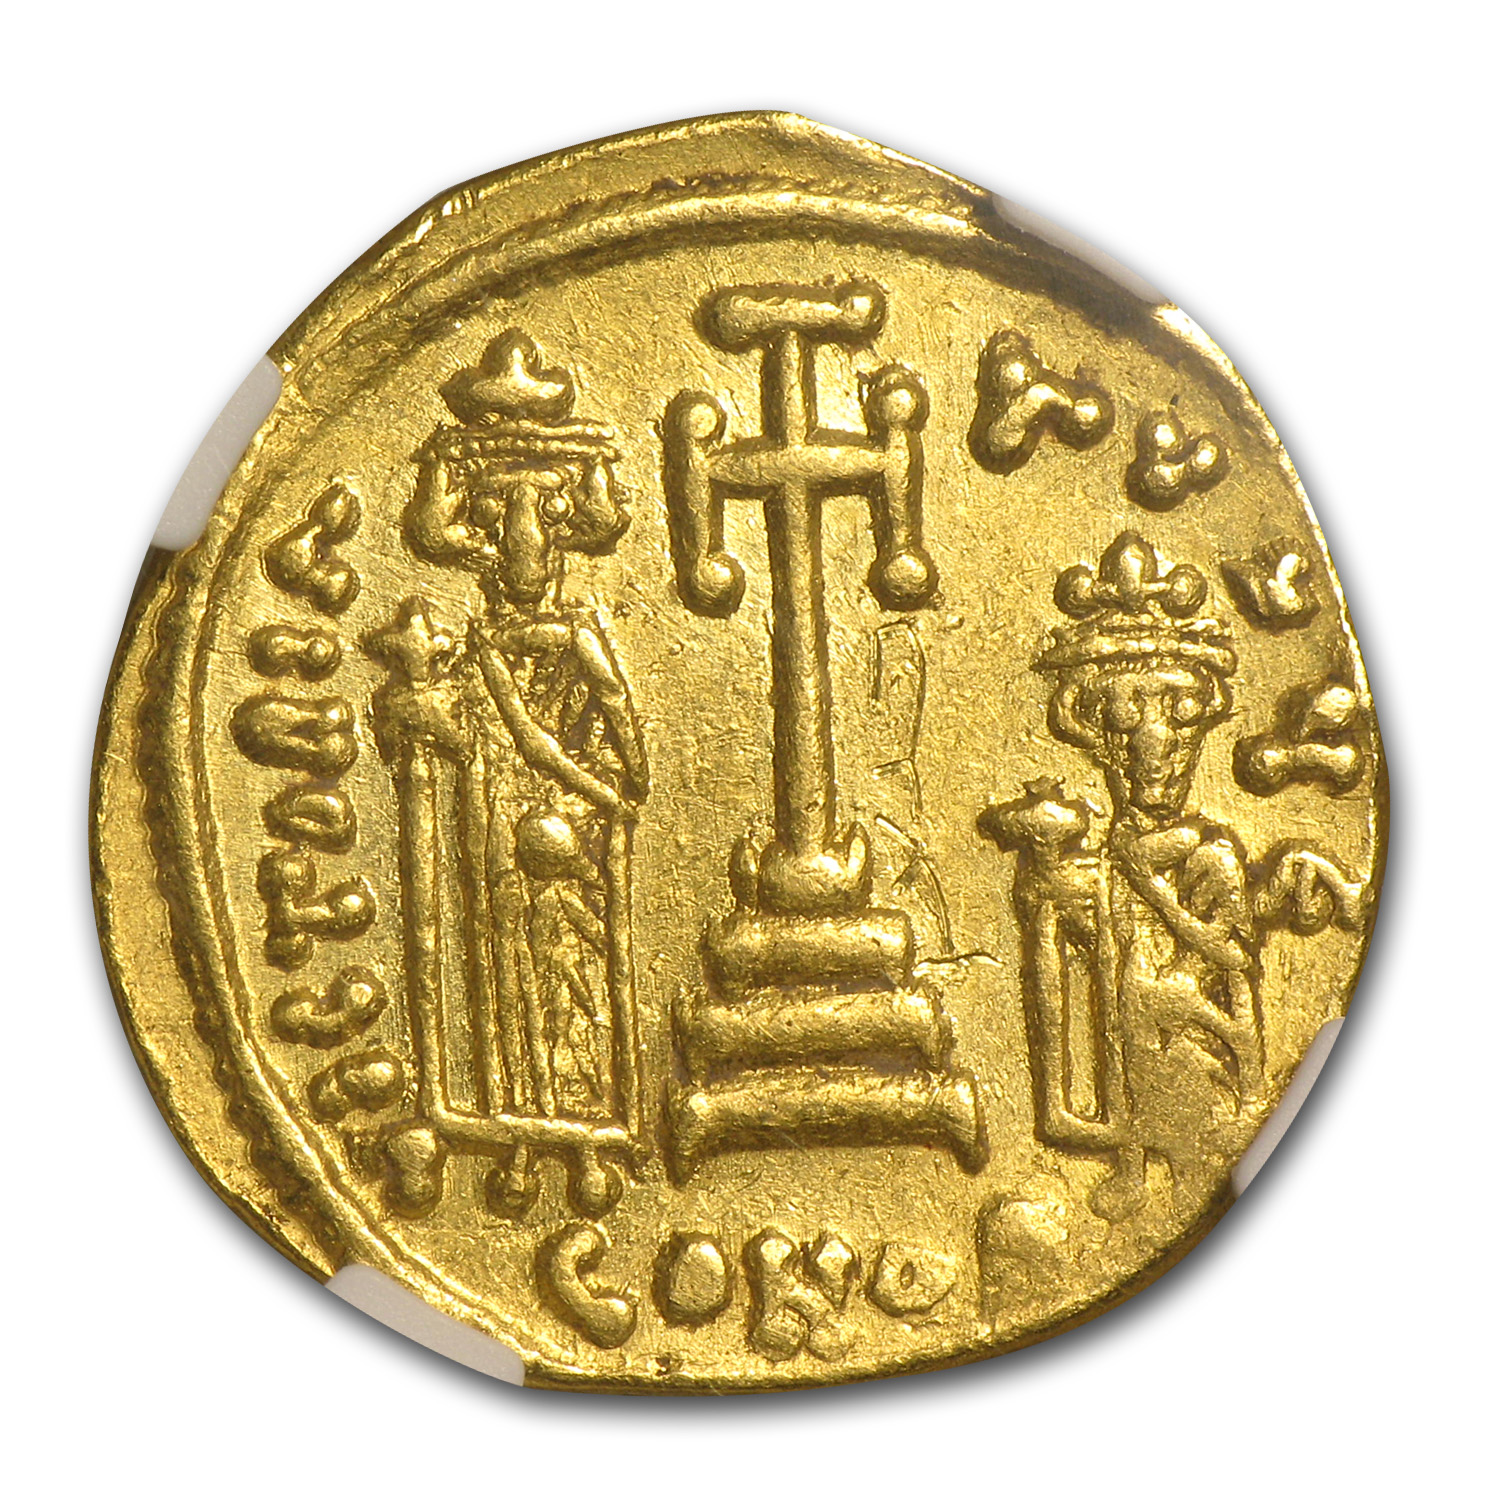 Byzantine Gold Constans II AU NGC (641-668AD)